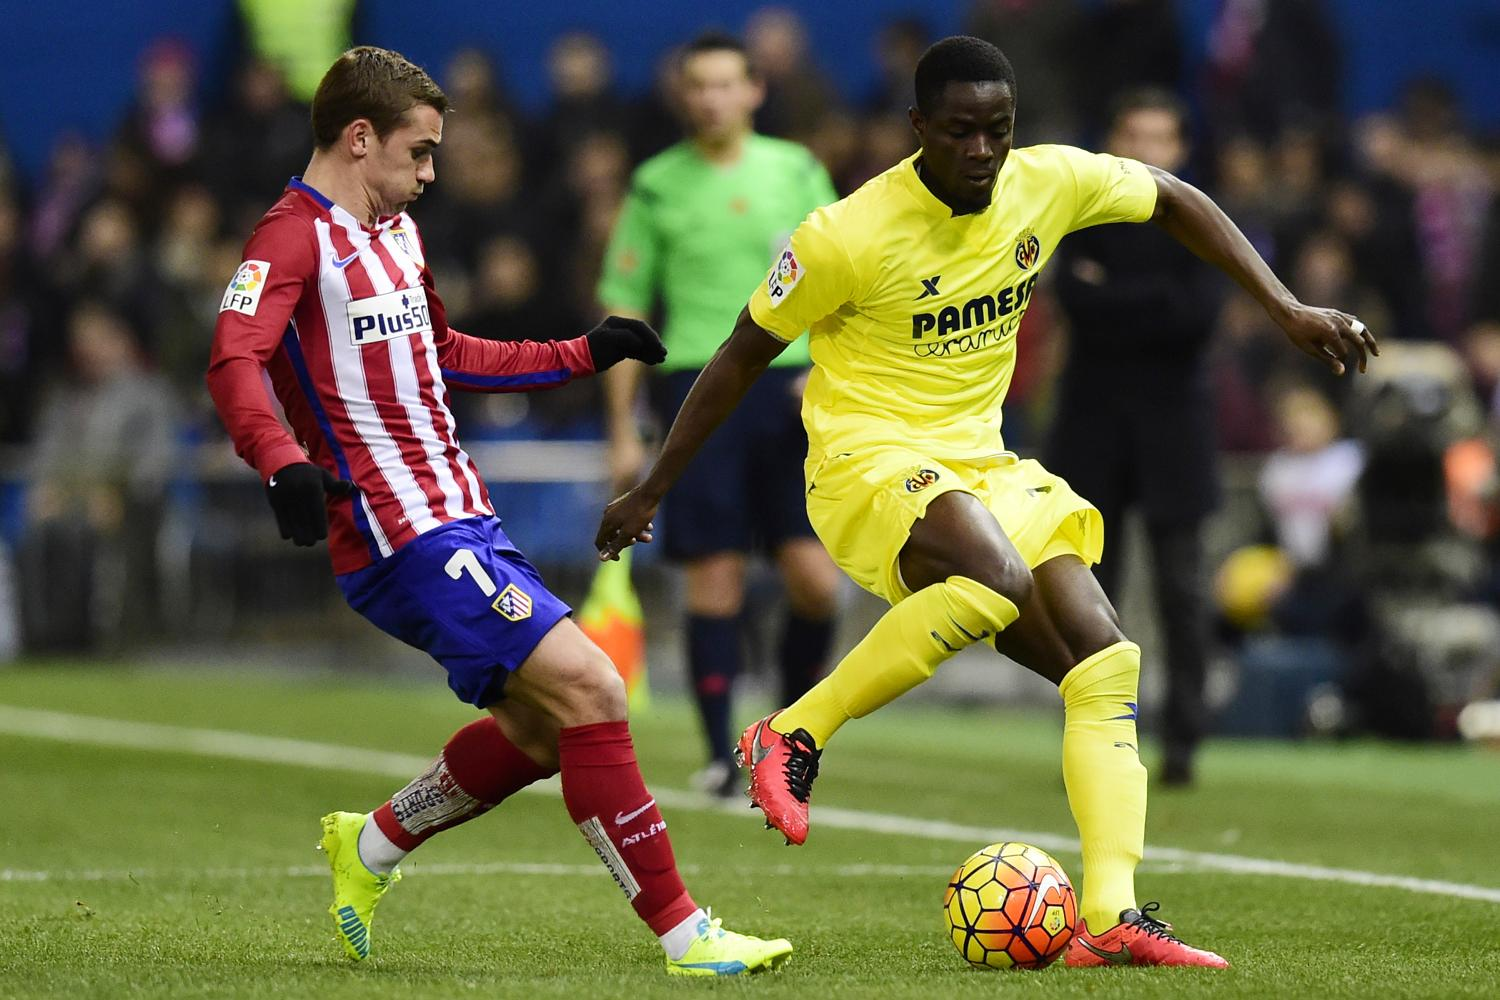 United have already splashed the cash to sign Villarreal's Eric Bailly for £30m